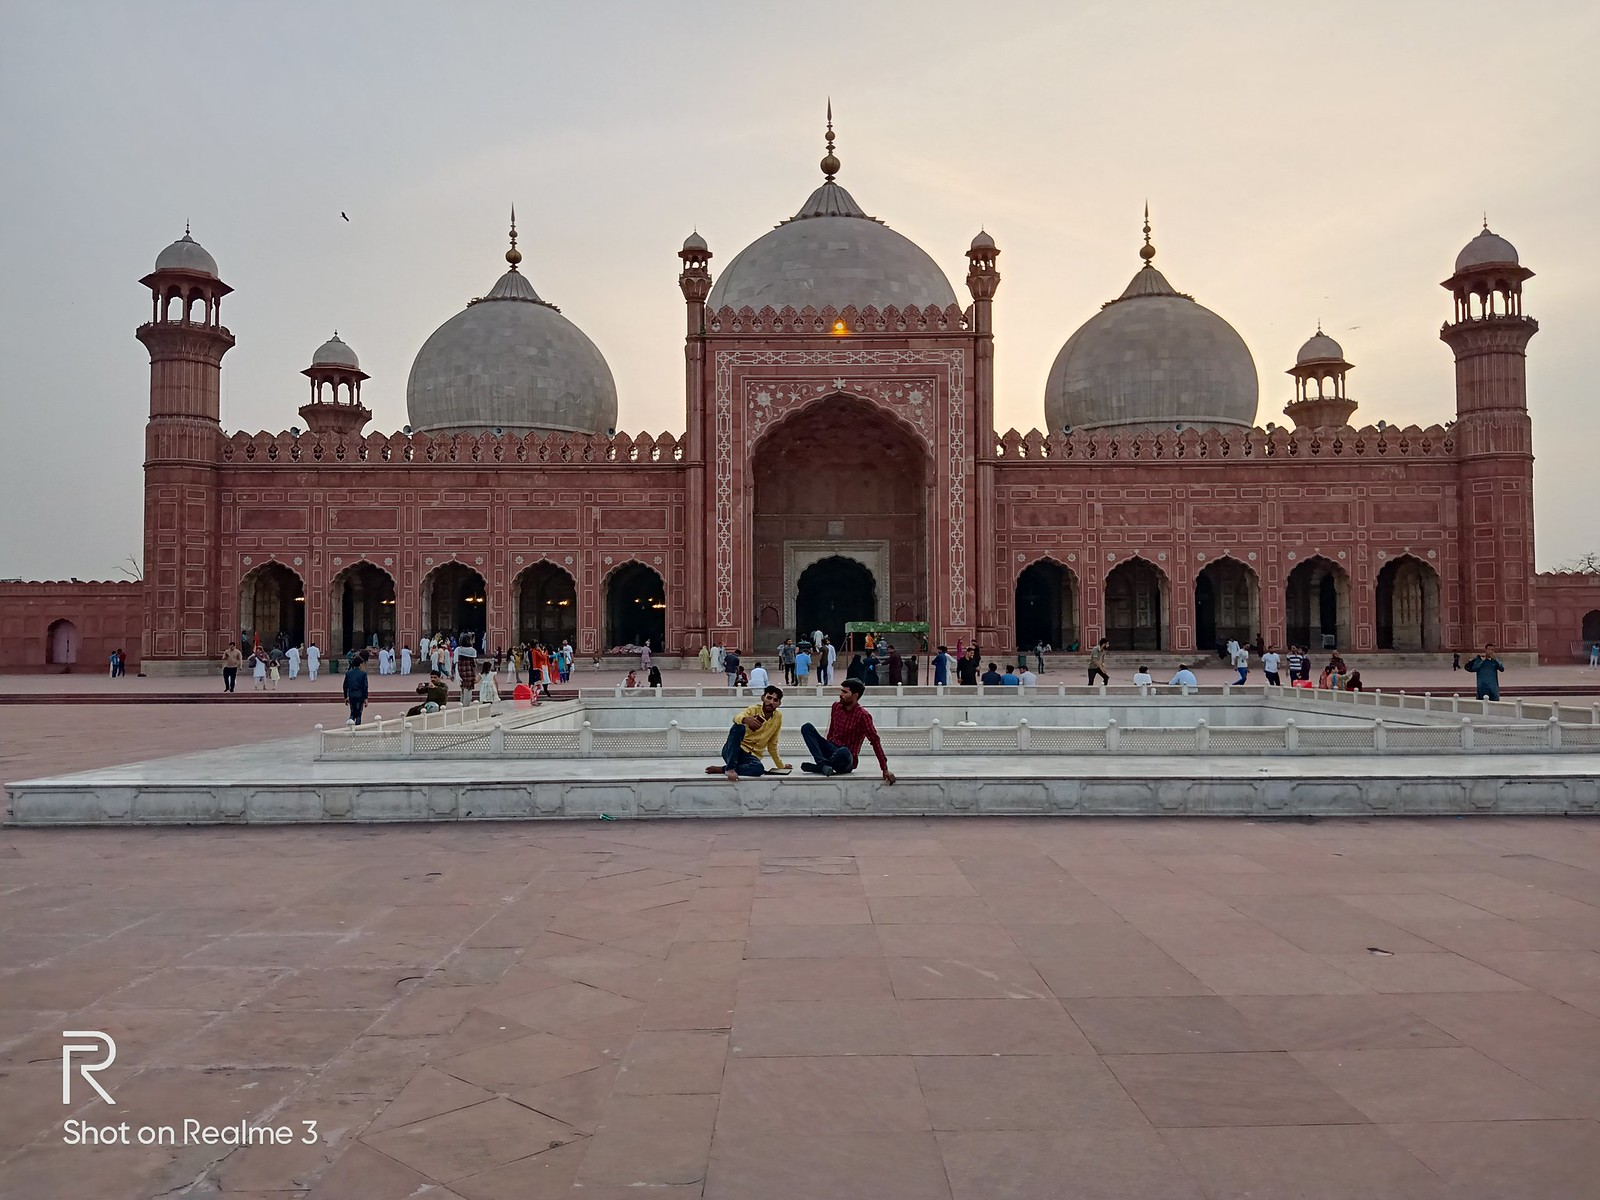 Badshahi Mosque Picture with HDR Mode on Realme 3